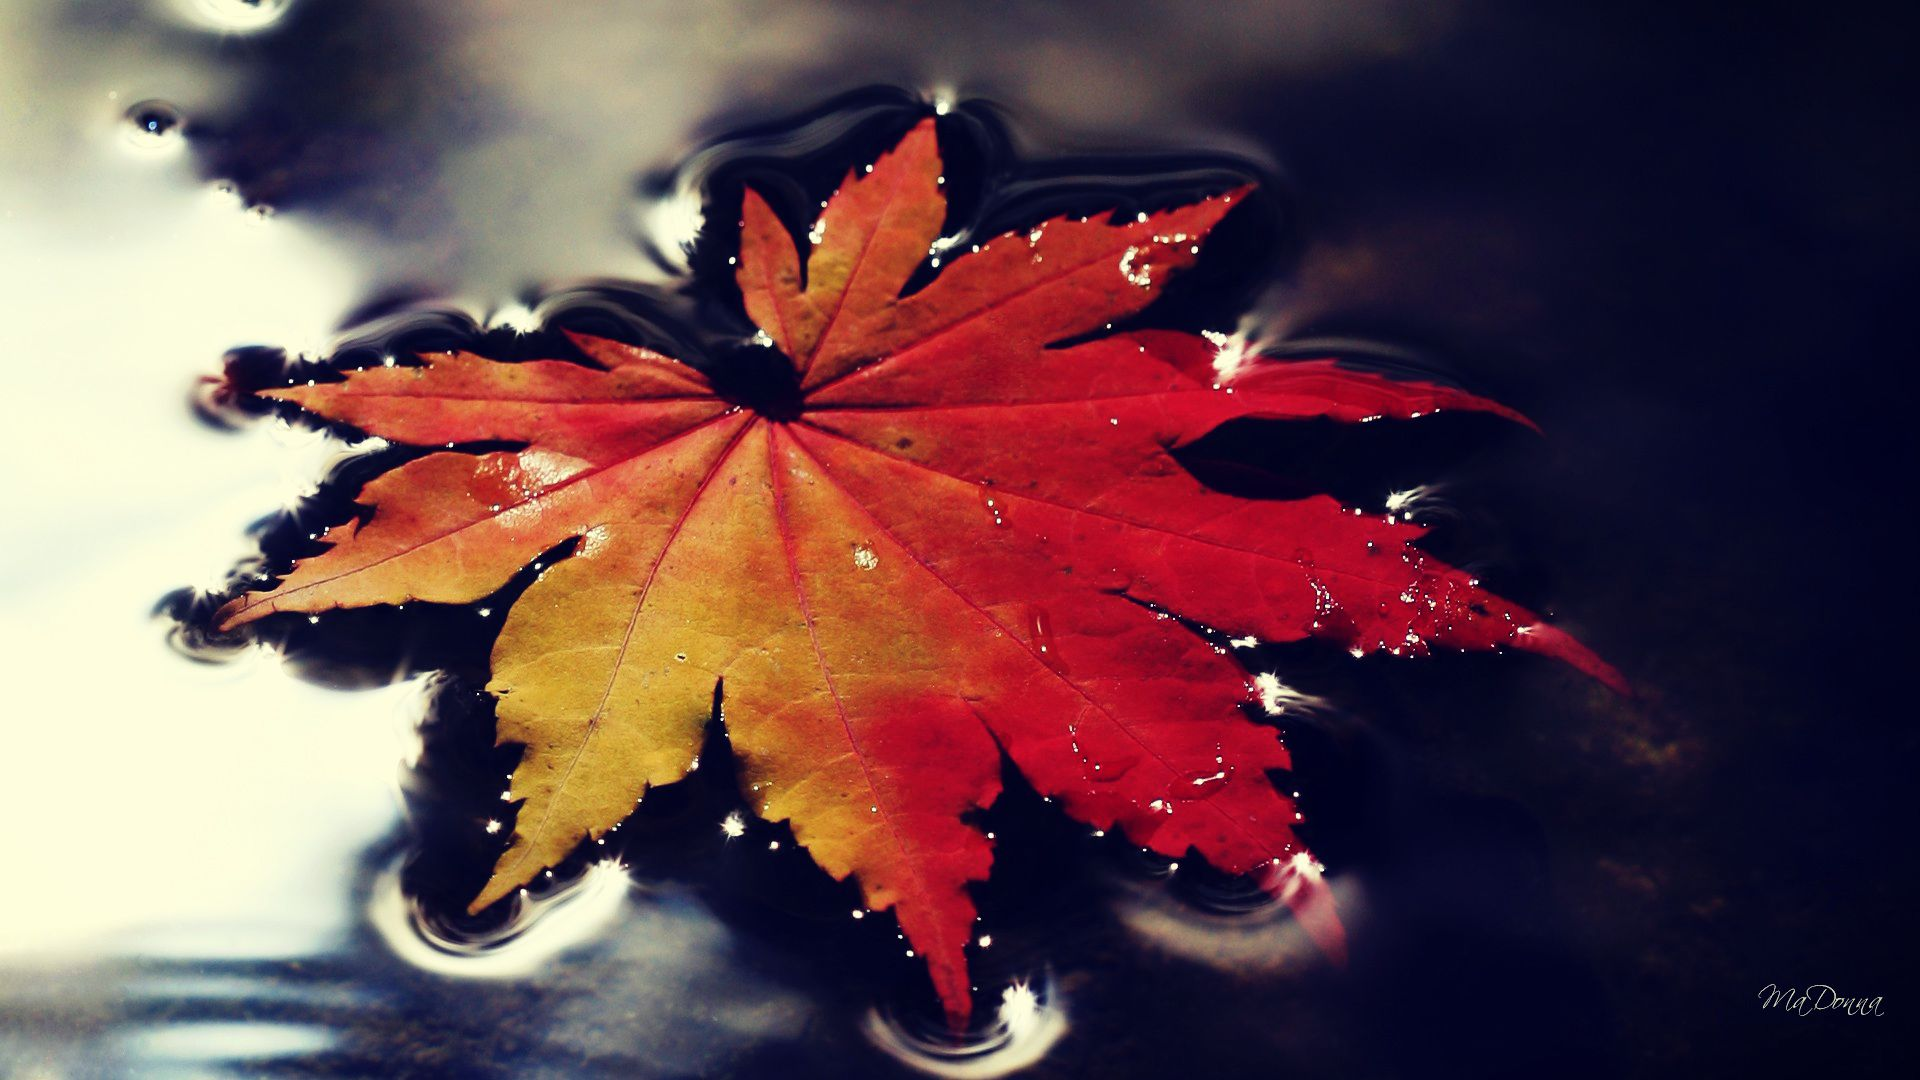 Nature Wallpaper Autumn Leaf Falling in Water Xpx 1920x1080px